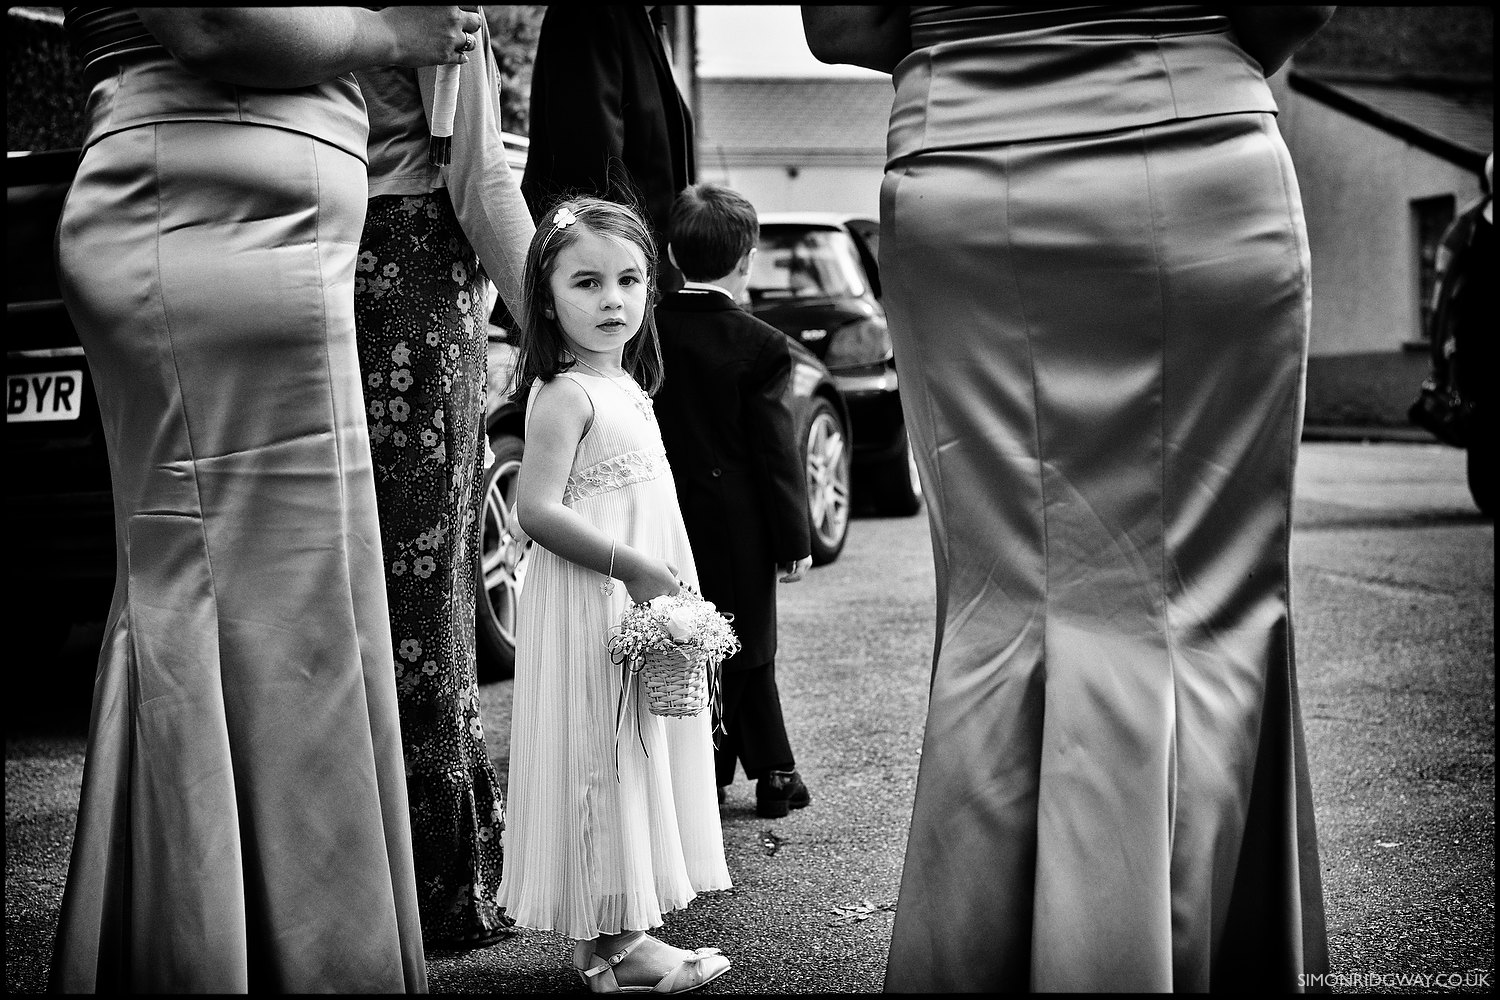 Wedding Photojournalism by Simon Ridgway (Leica M9, Zeiss 50/2 Planar)